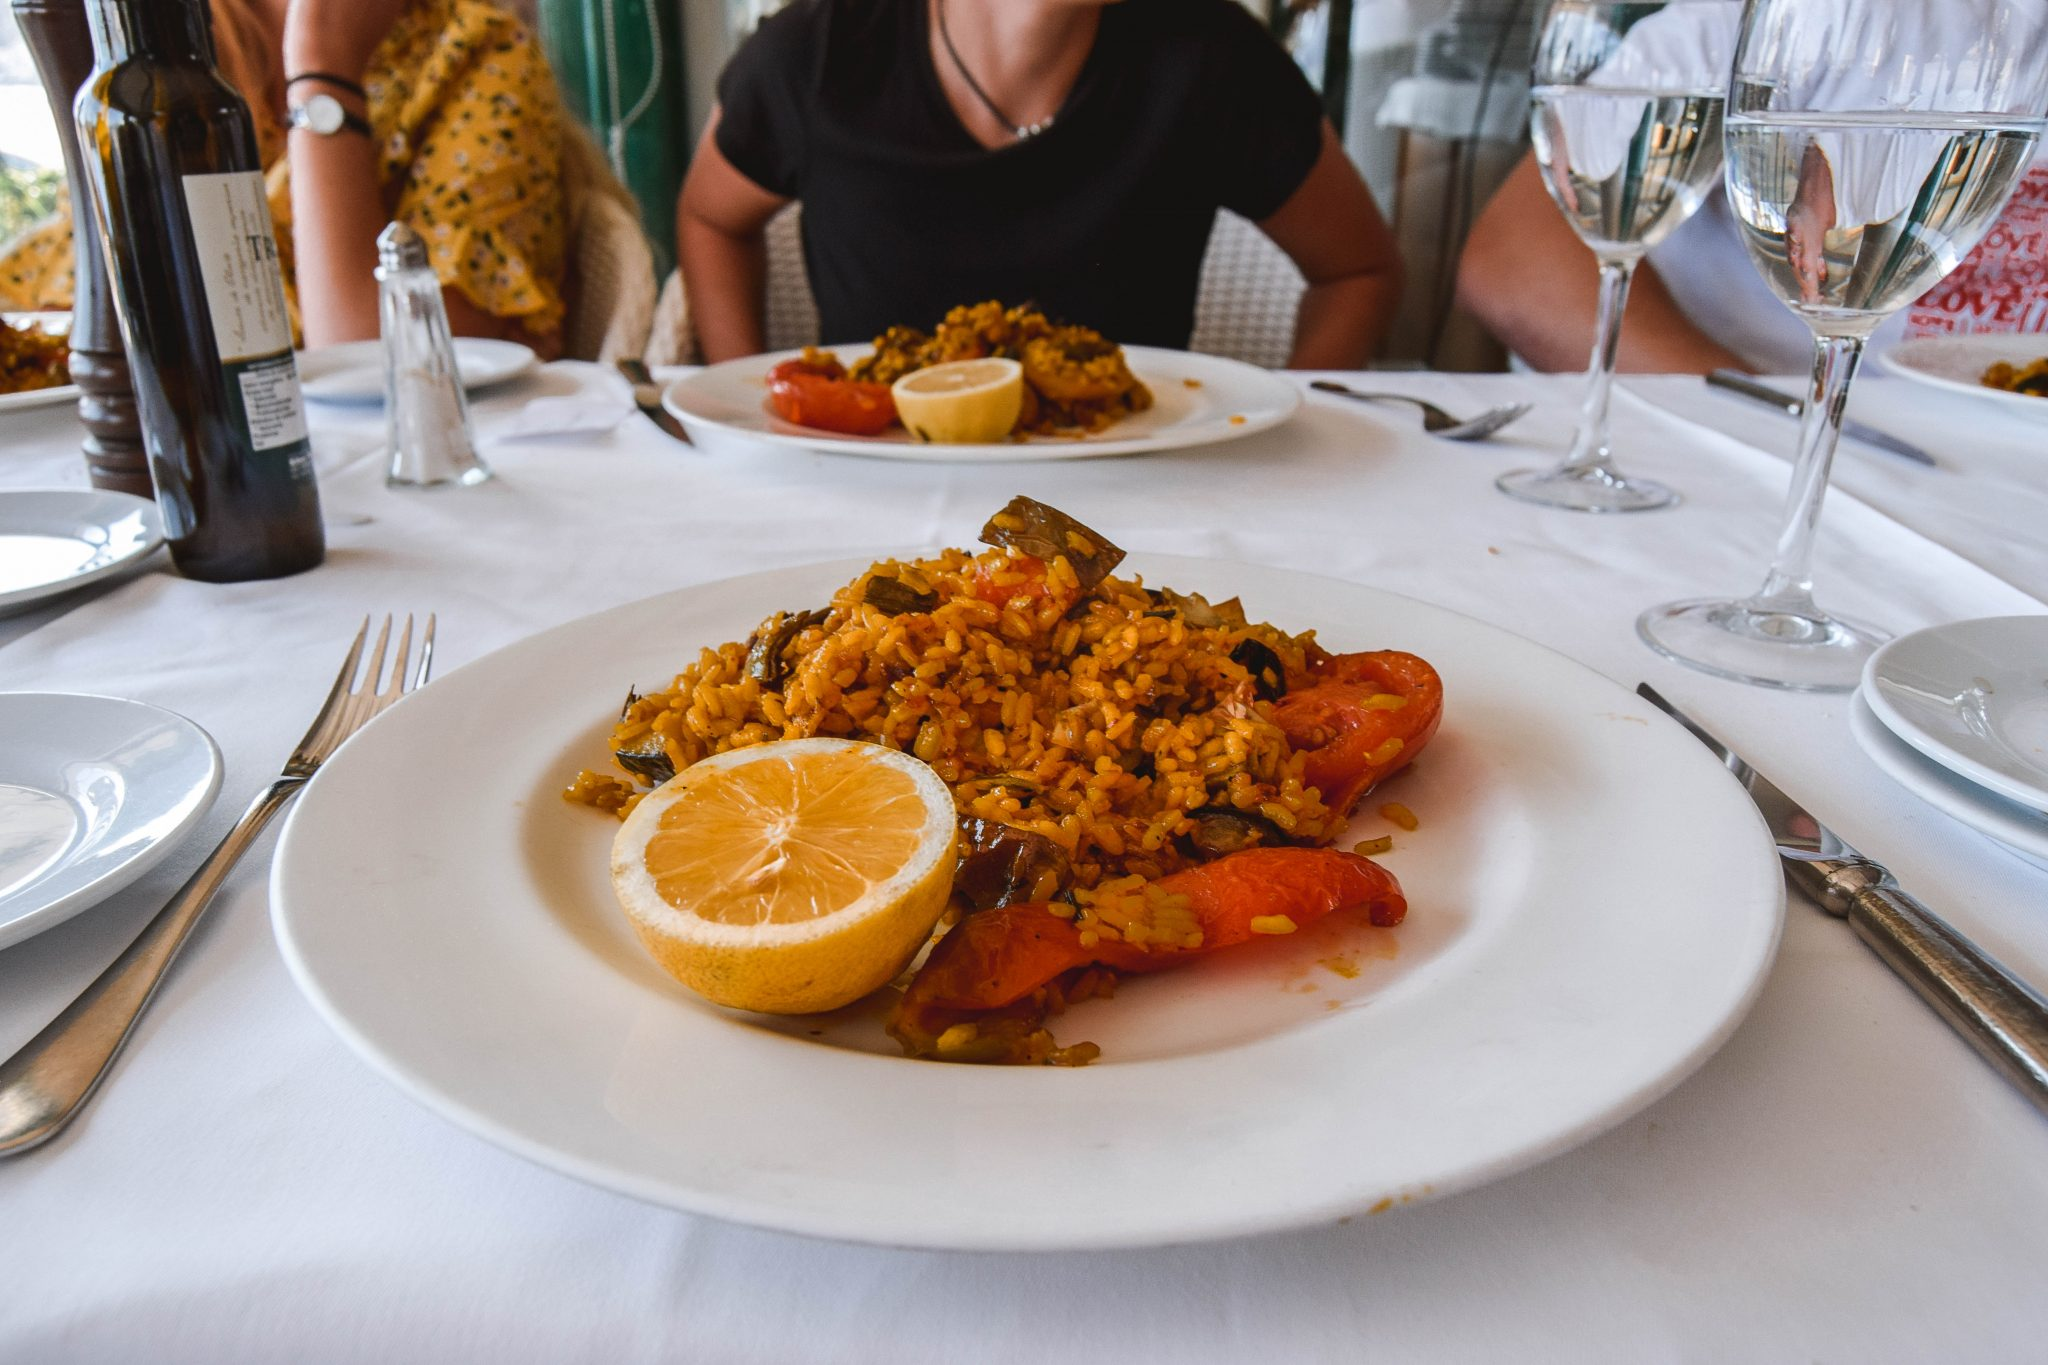 Wanderers & Warriors - Things To Do In Benidorm - Eat Paella In Benidorm Spain